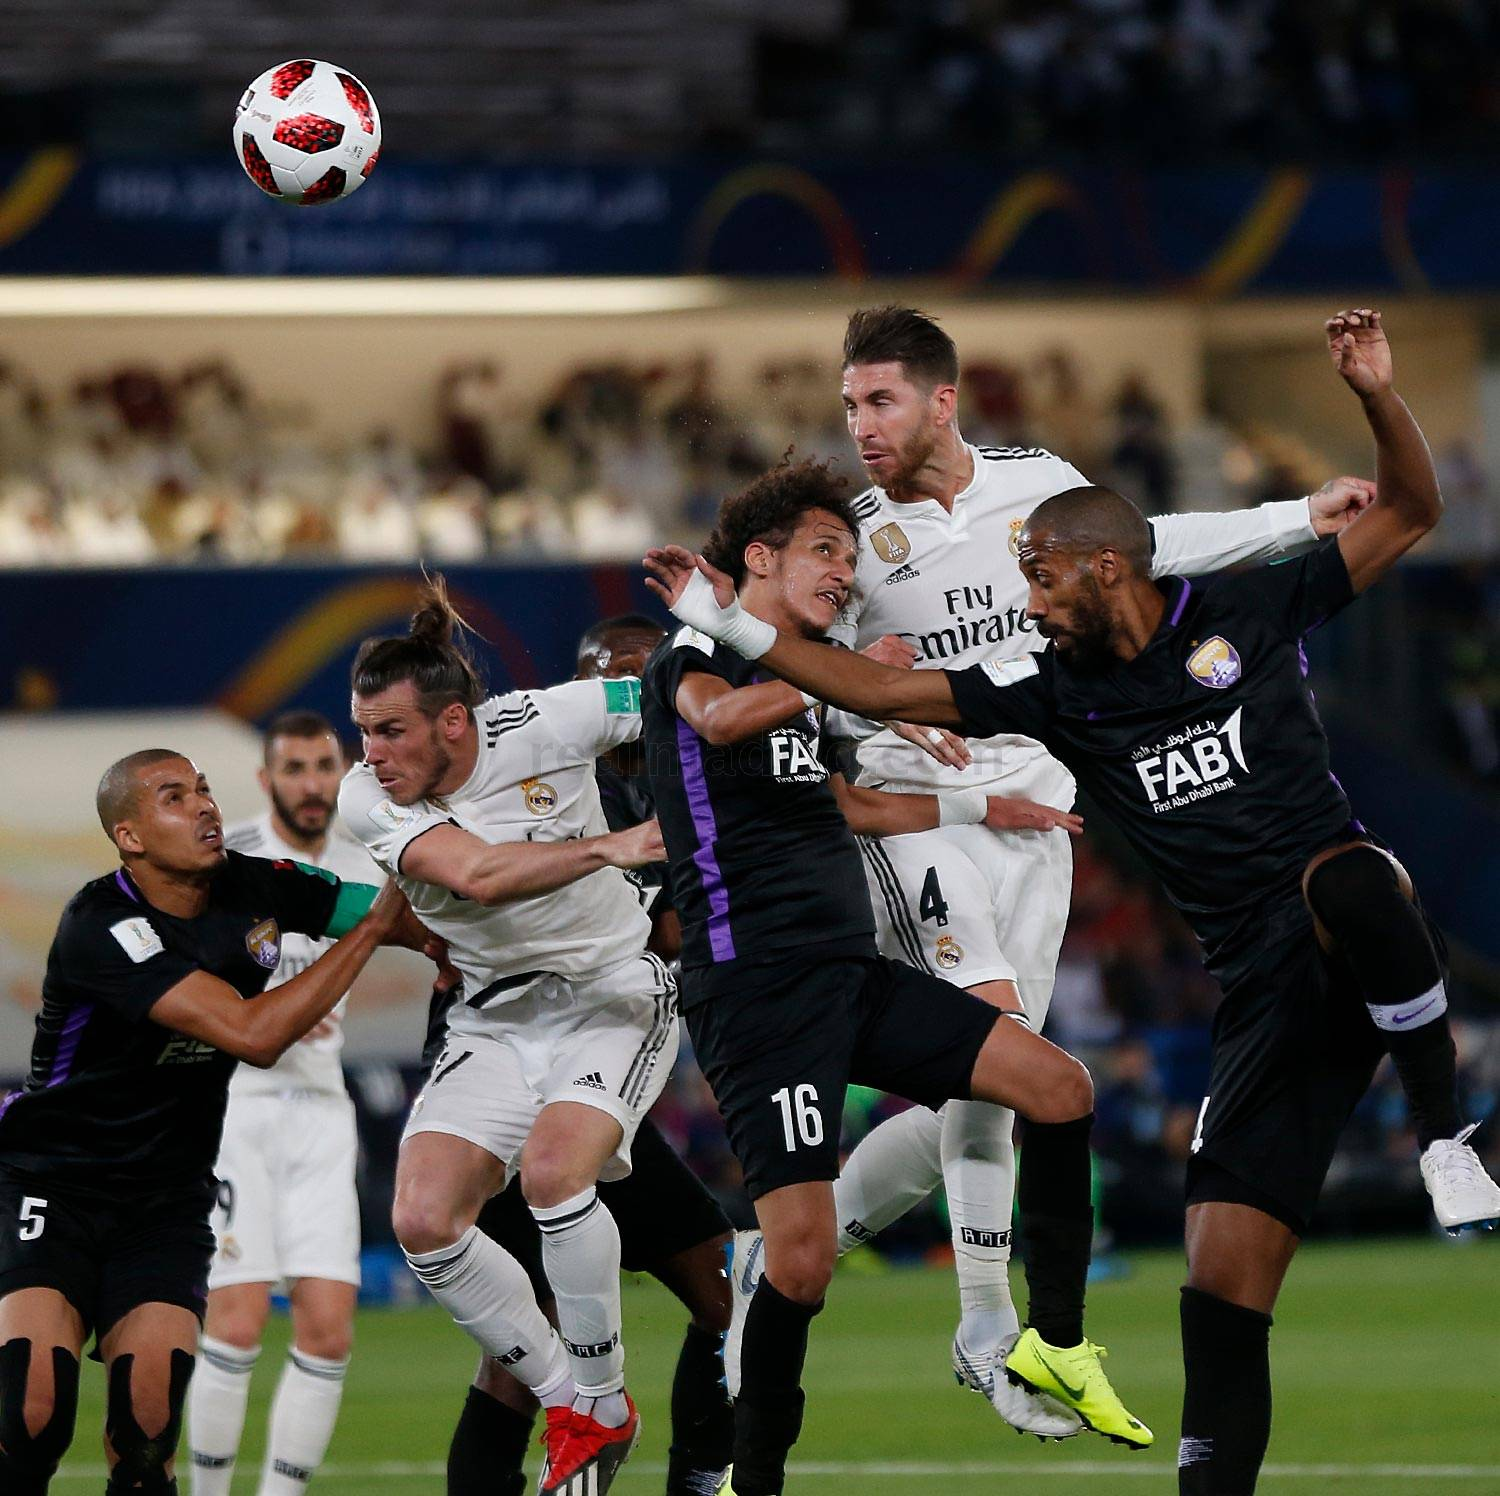 Real Madrid - Real Madrid - Al Ain - 22-12-2018